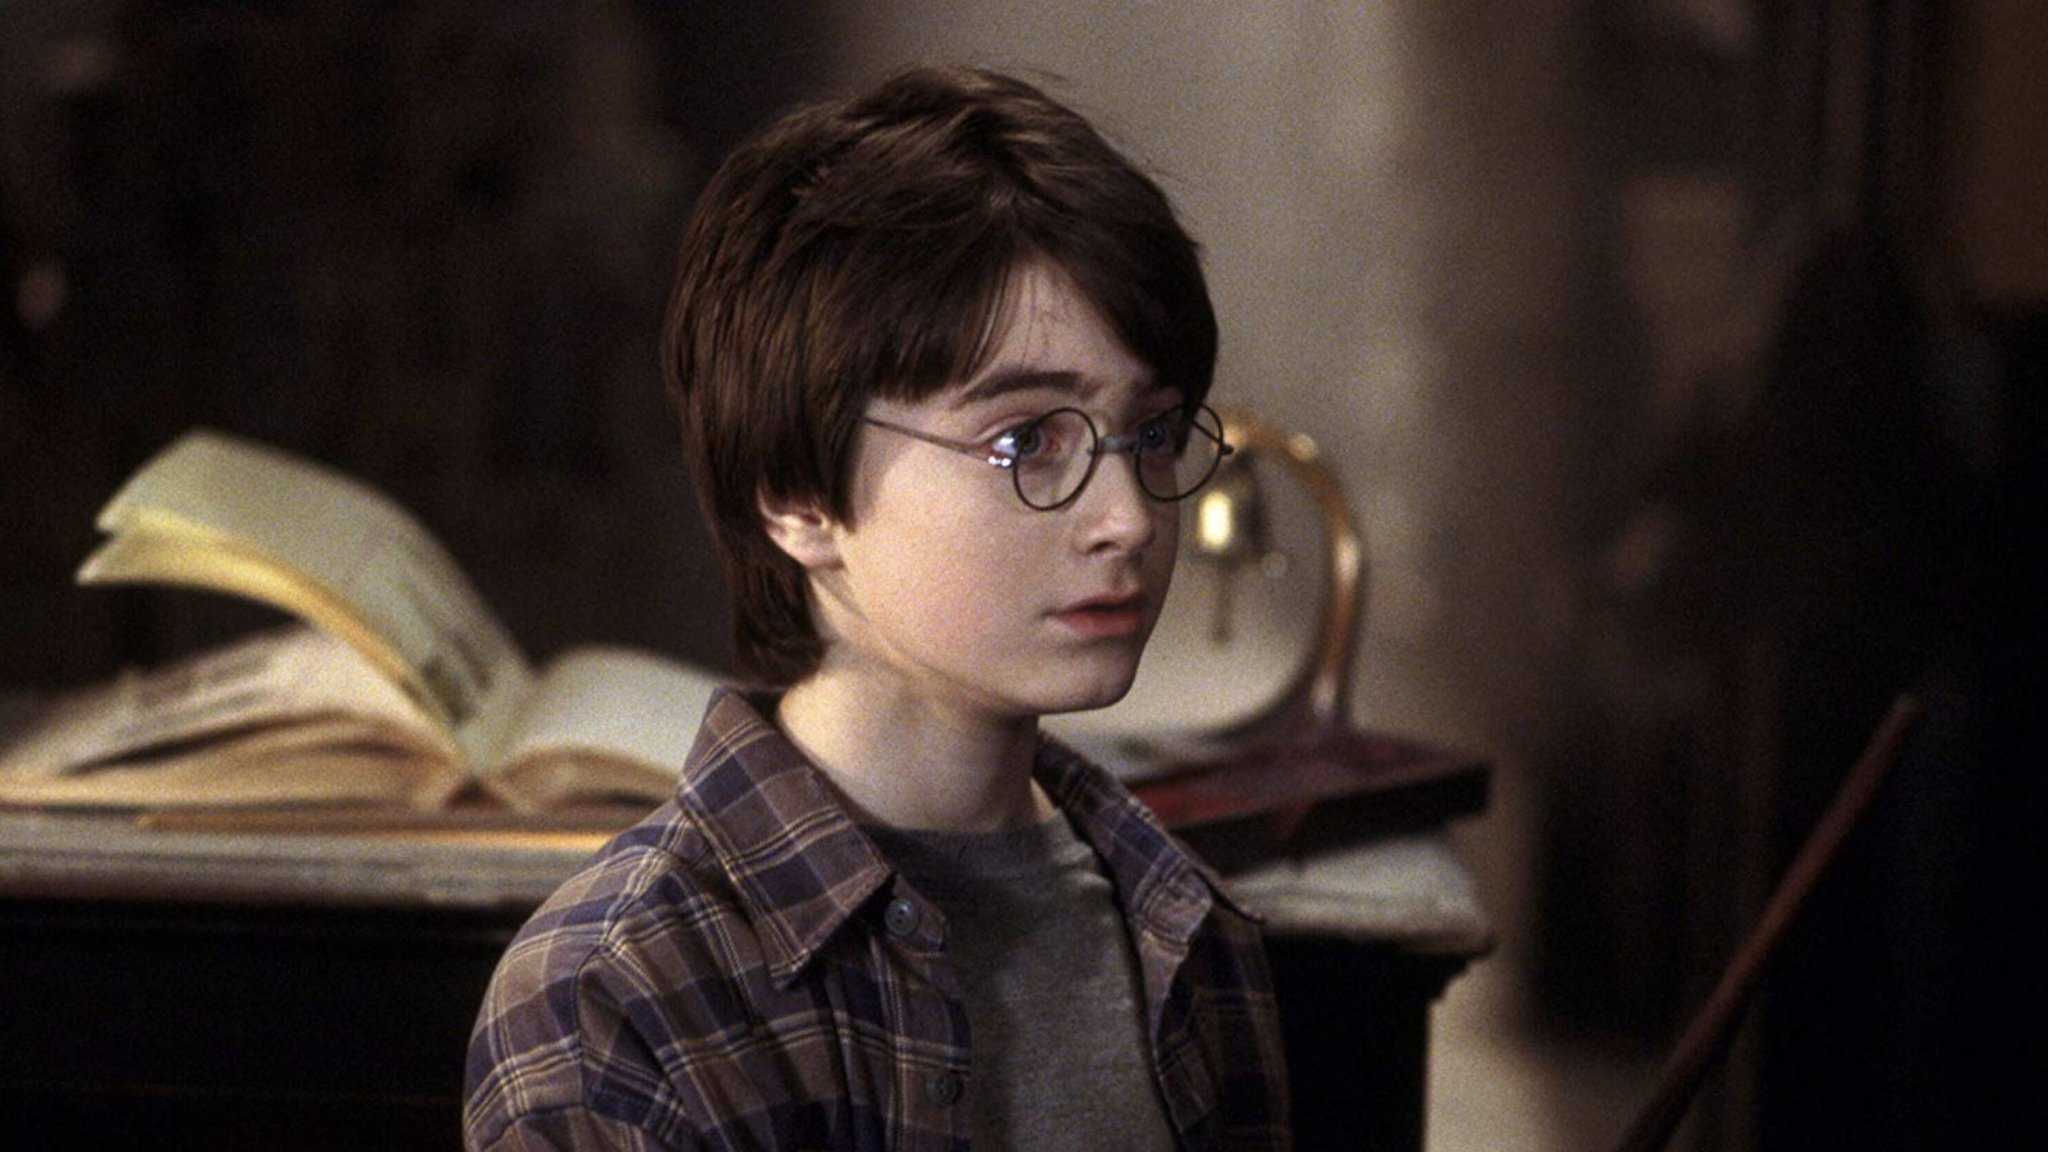 The Reason Harry Potter's Eyes Changed From Green in the Books to Blue in the Movies